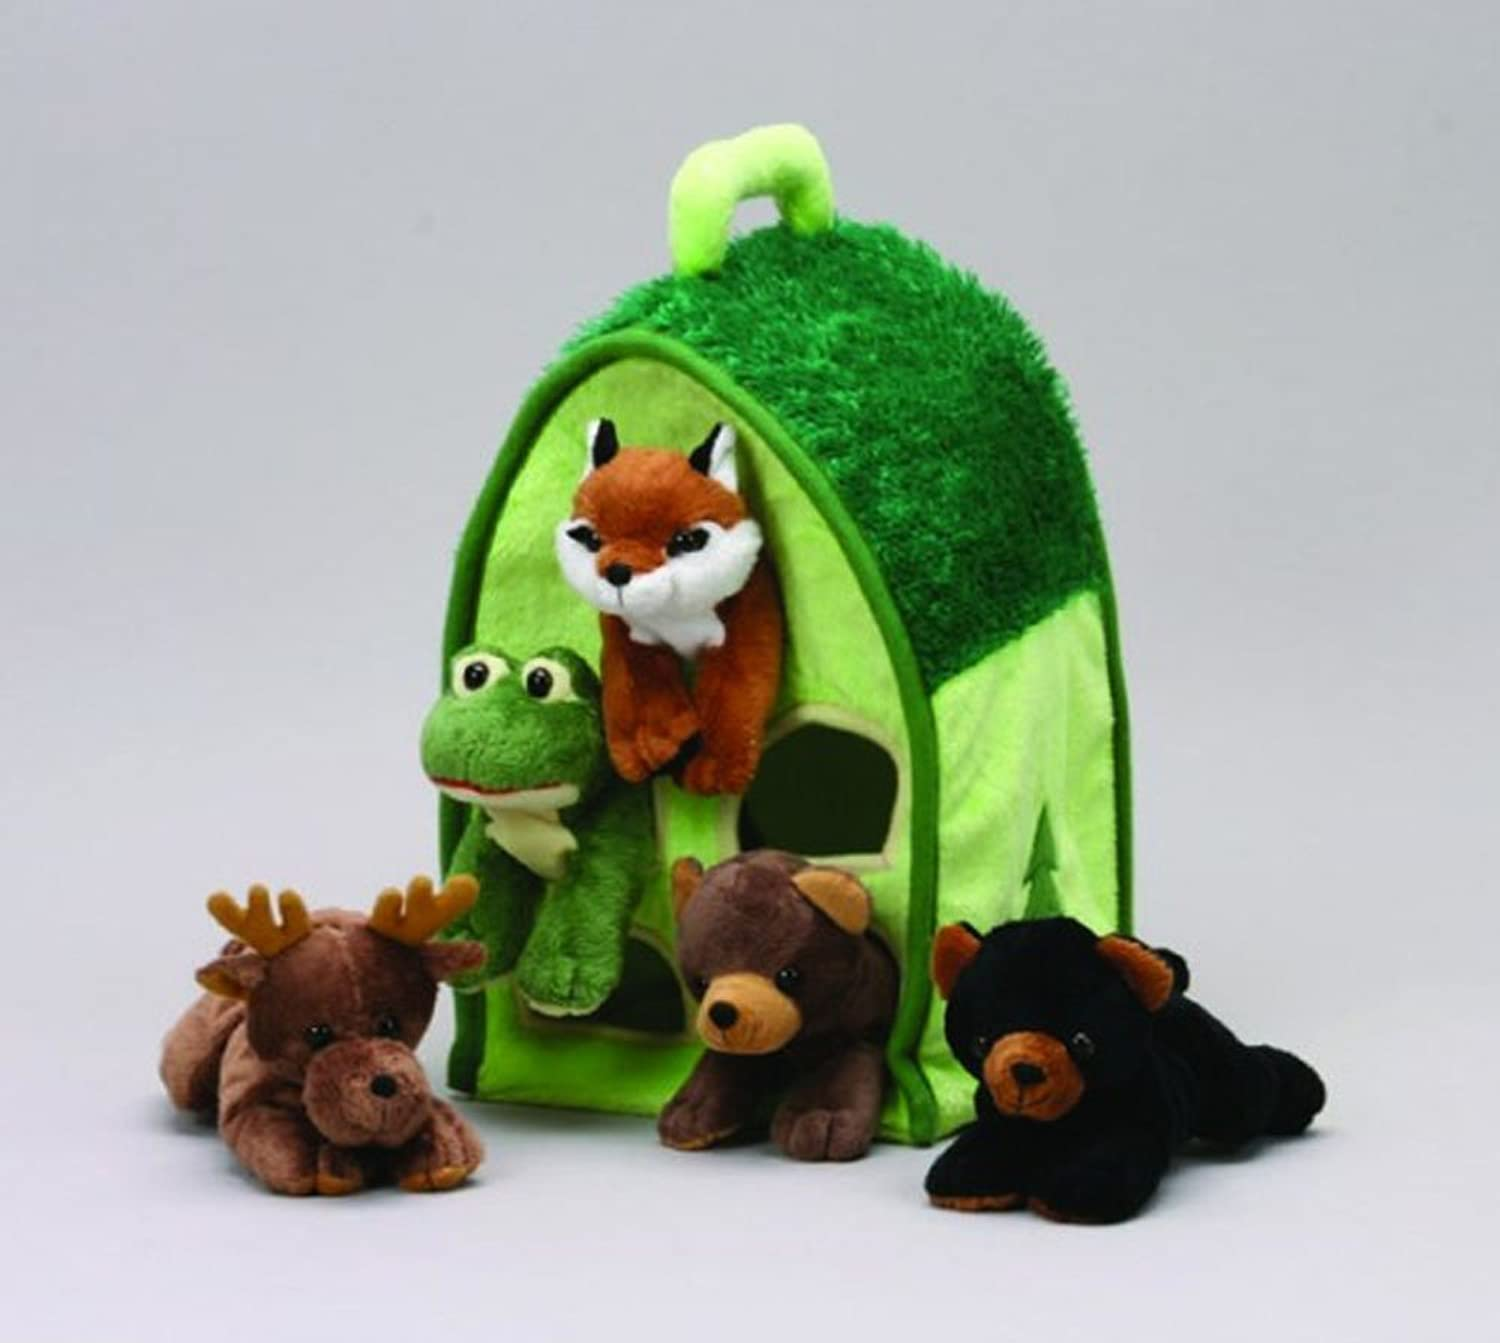 Plush Forest Animal House with Animals - Five (5) Stuffed Forest Animals ( braun Bear, schwarz Bear, Moose, Frog, Fox) in Play Forest Carrying House by Unipak